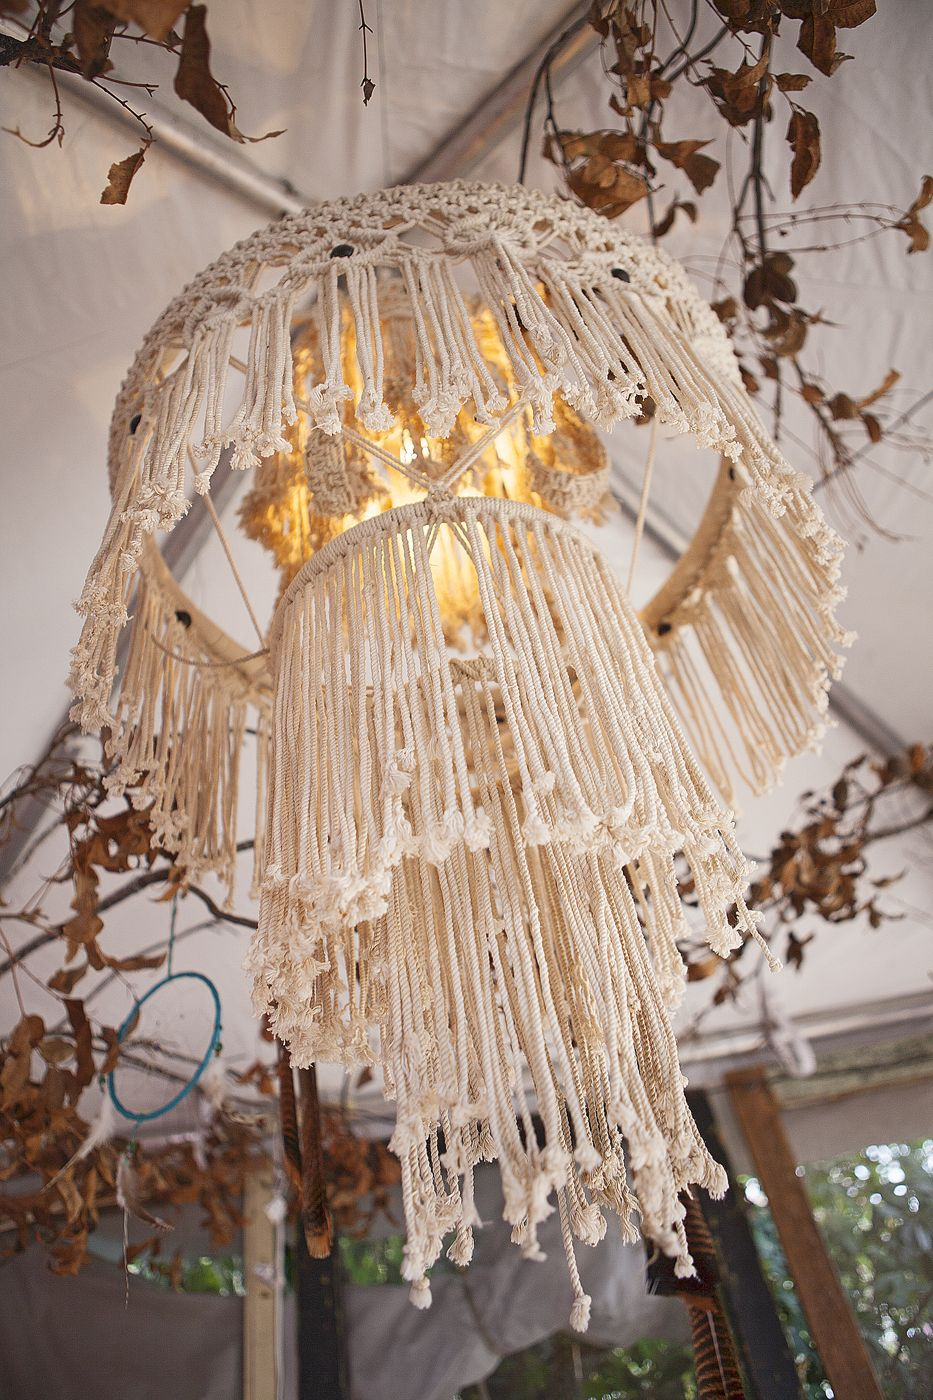 Macrame hanging table turned into a chandelier using a light cord macrame hanging table turned into a chandelier using a light cord arubaitofo Choice Image